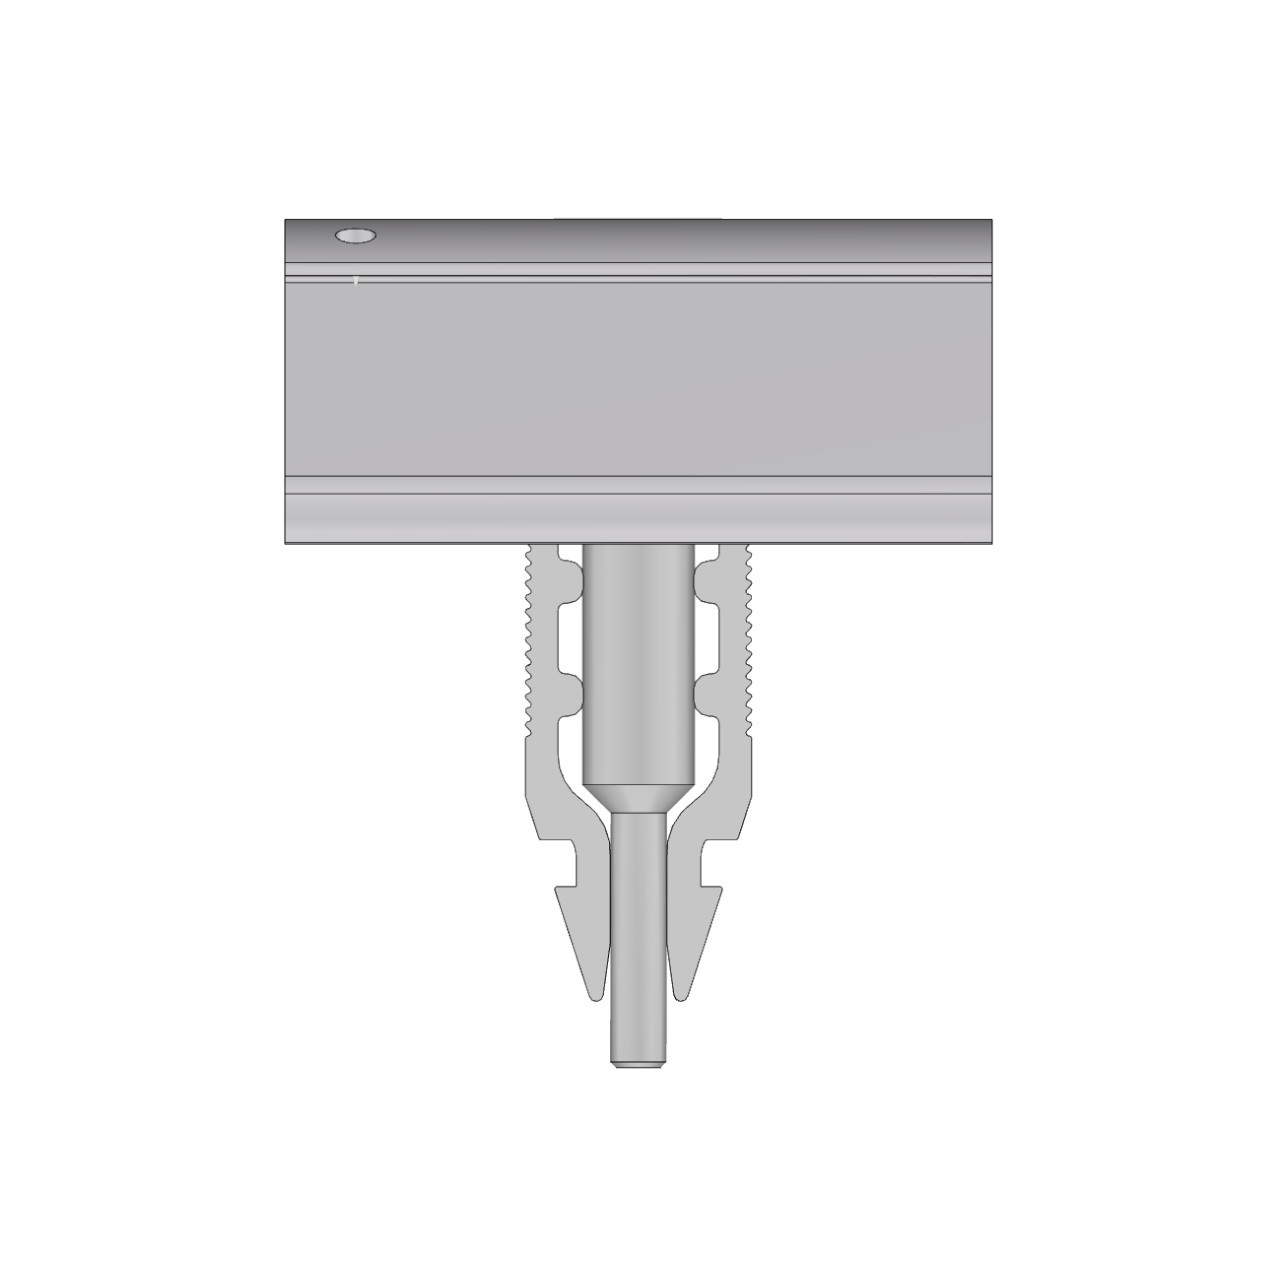 Schletter - Rapid16 Middle Clamp - Side